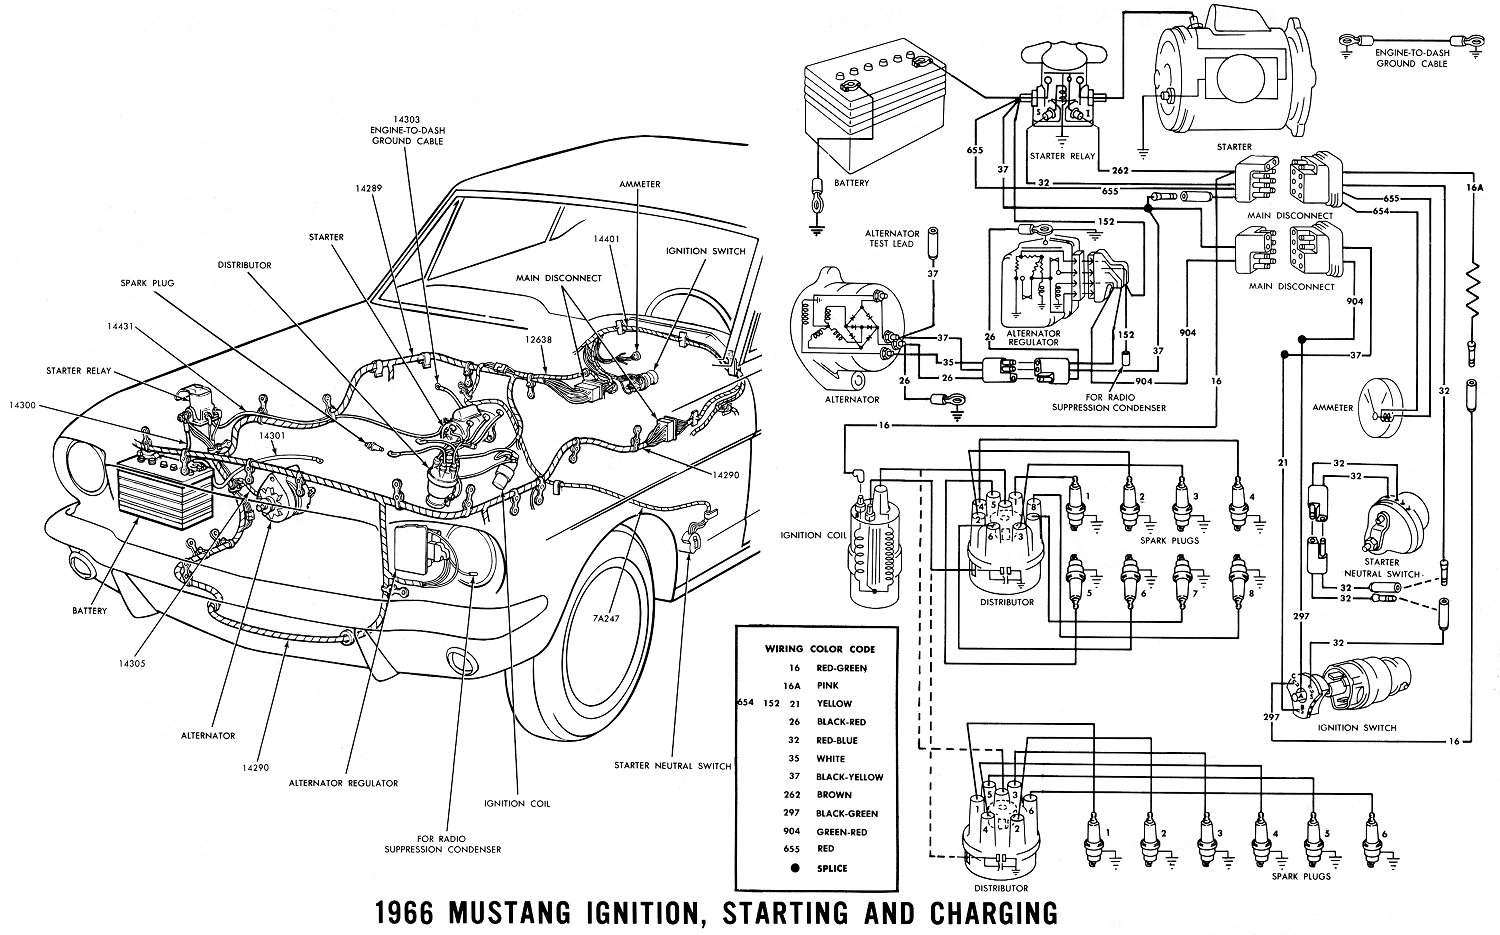 66ignit 1966 mustang wiring diagrams average joe restoration 1965 ford mustang wiring diagrams at gsmx.co